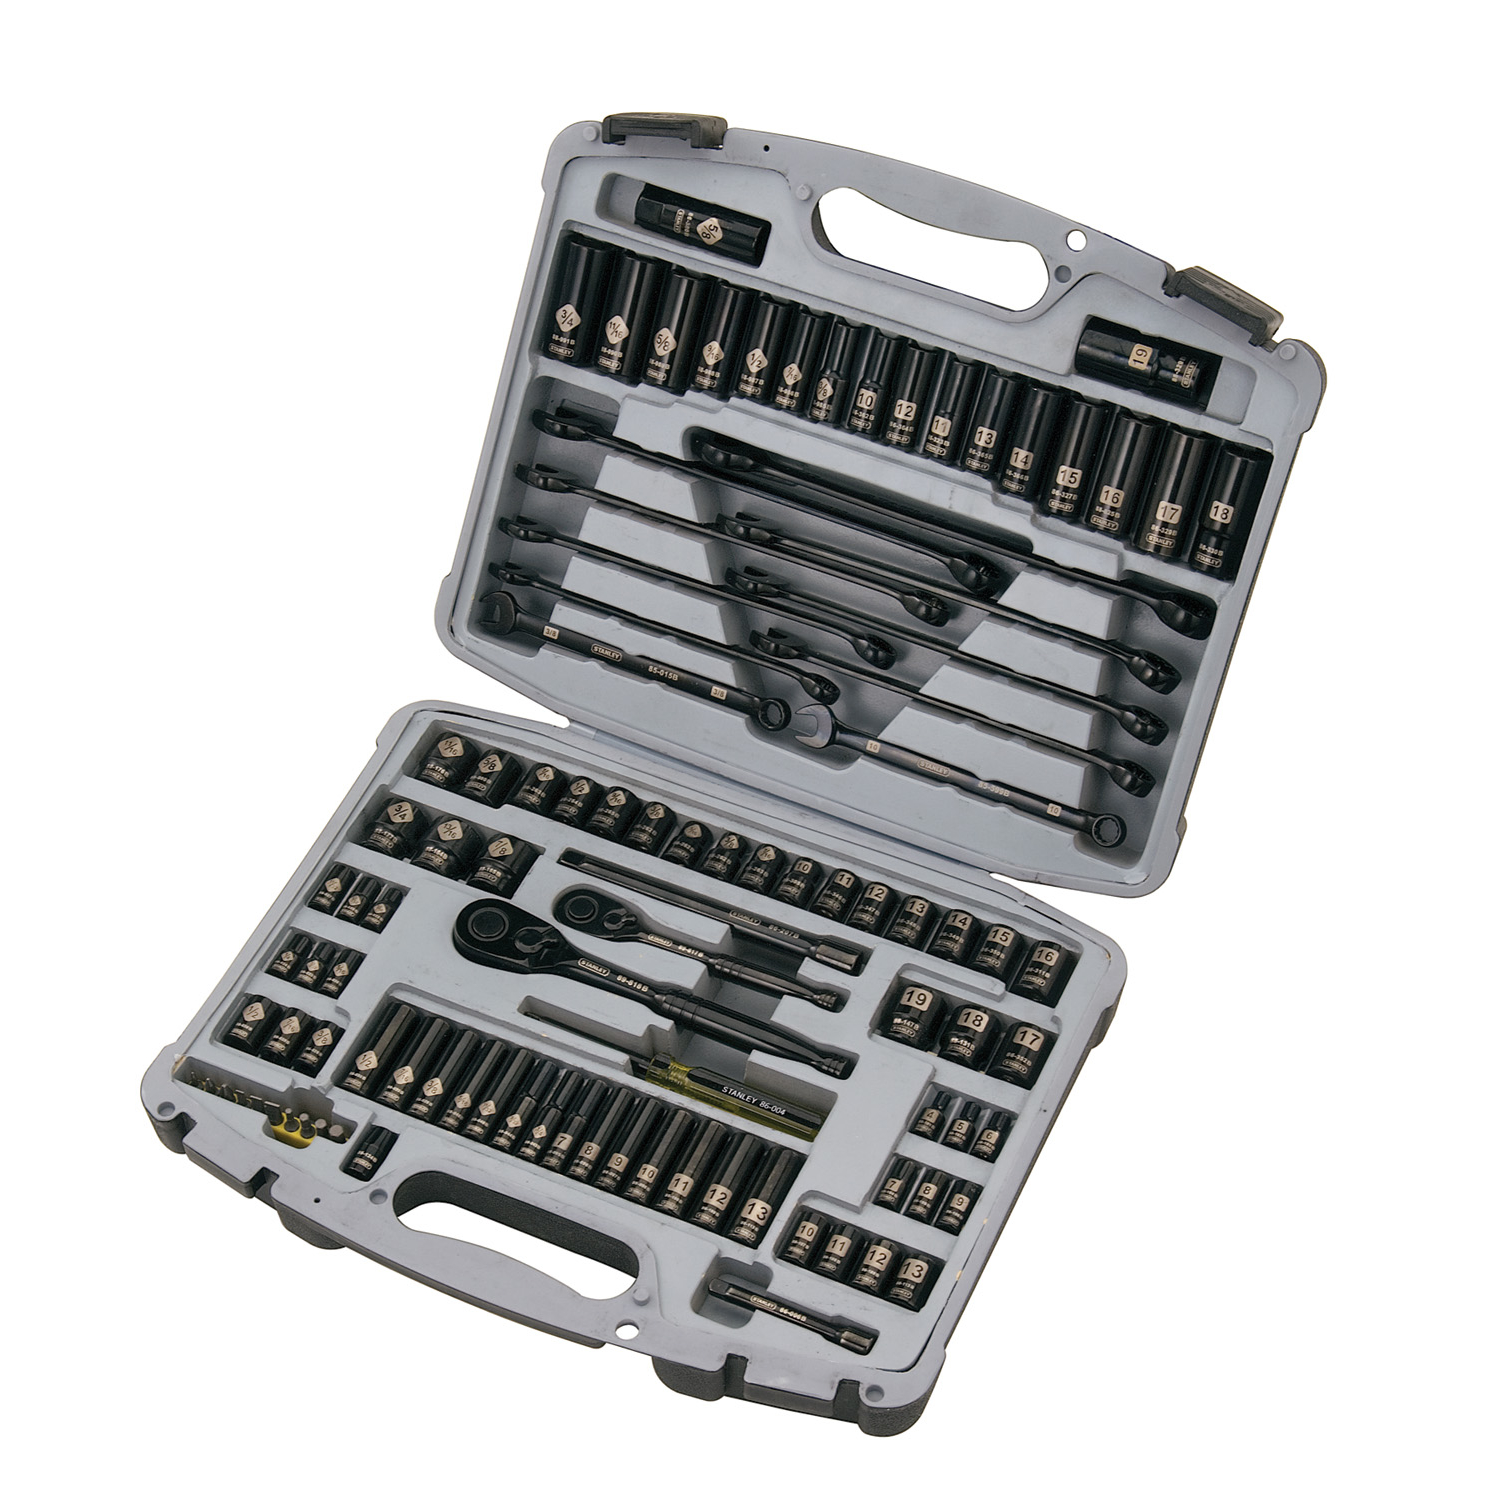 STANLEY 92-839 ($10 off $50+ Purchase) 99-Piece Mechanics Tool Set, Black Chrome